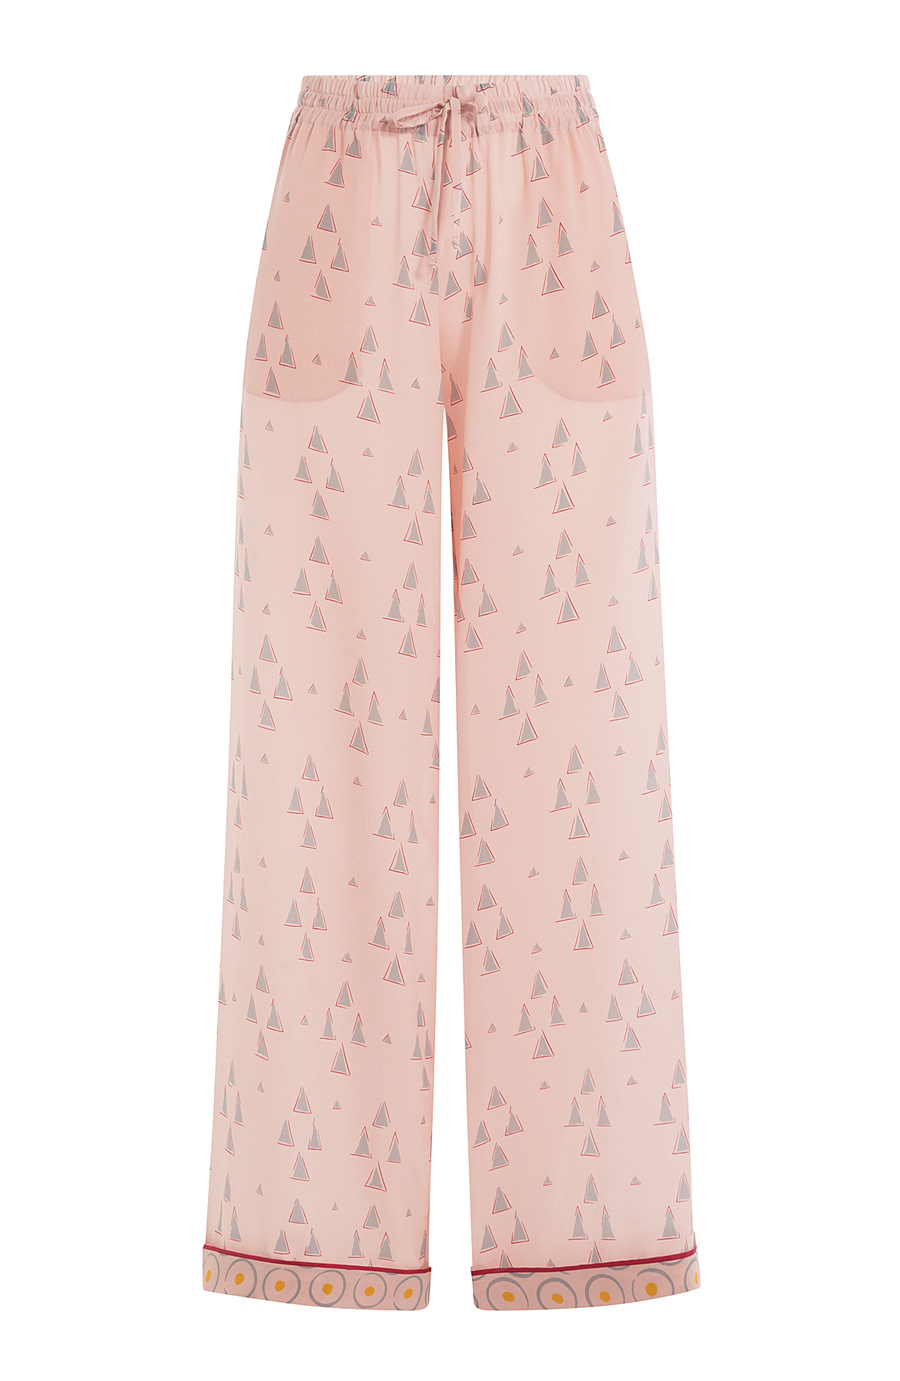 VALENTINO WIDE LEG PRINTED PANTS